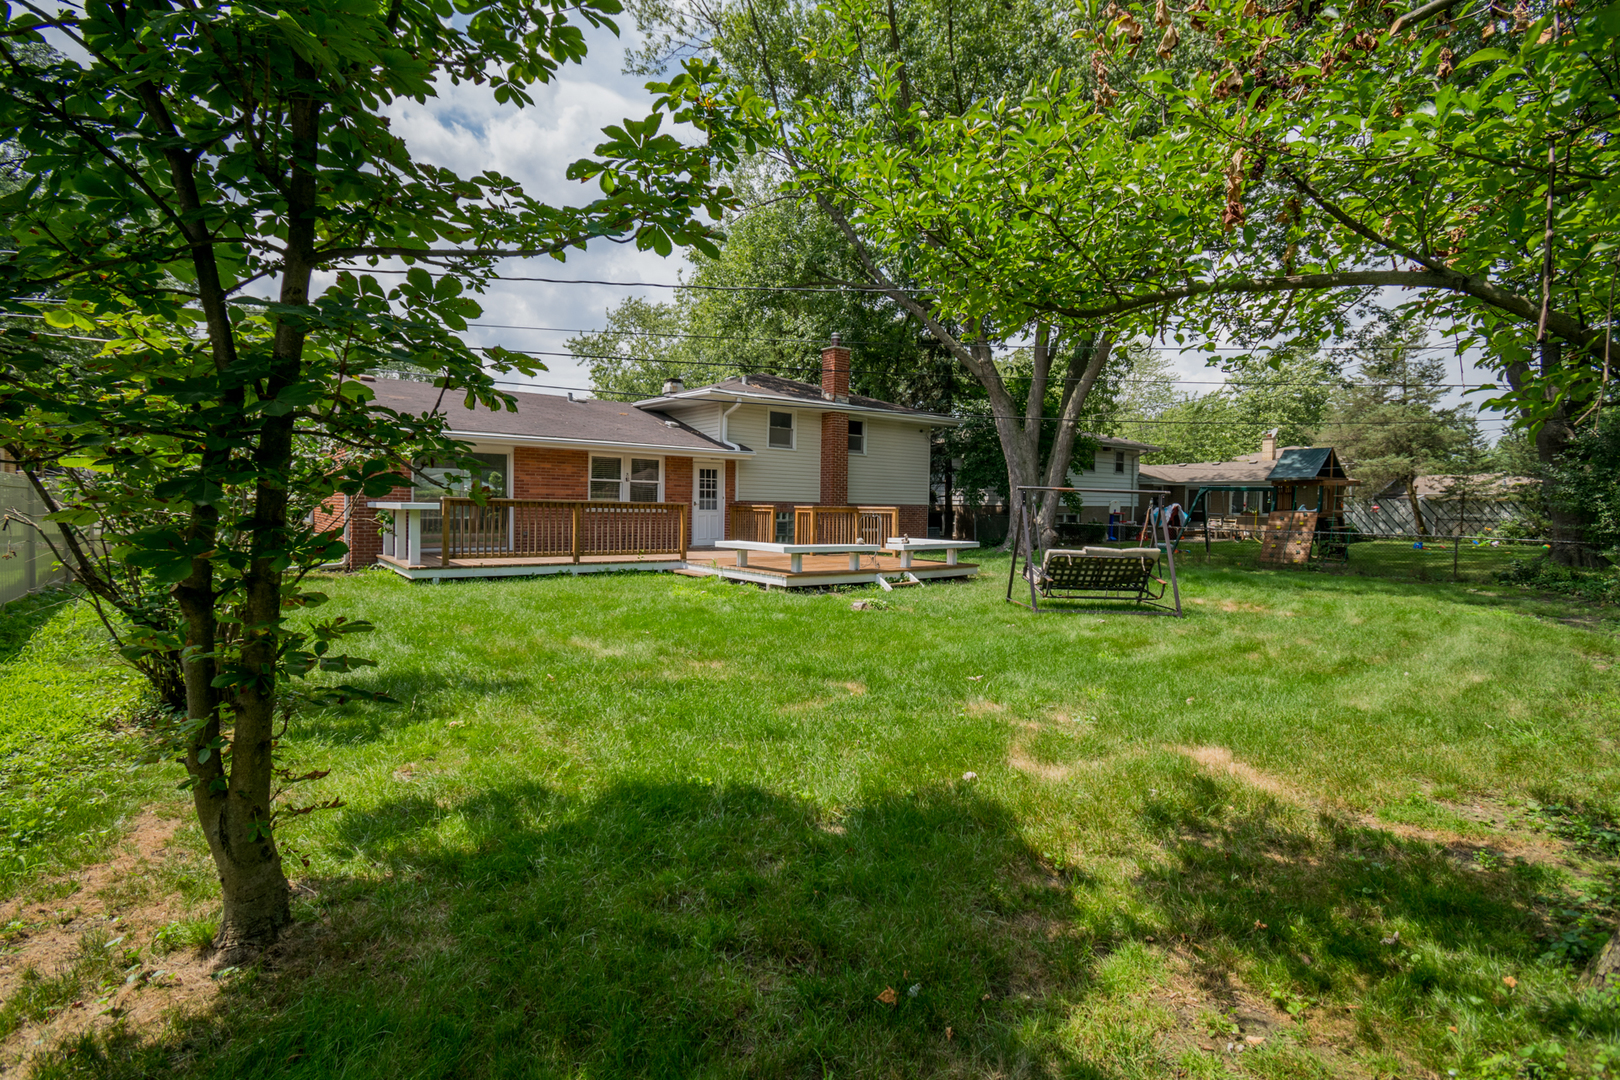 12947 South Forestview, Palos Heights, Illinois, 60463